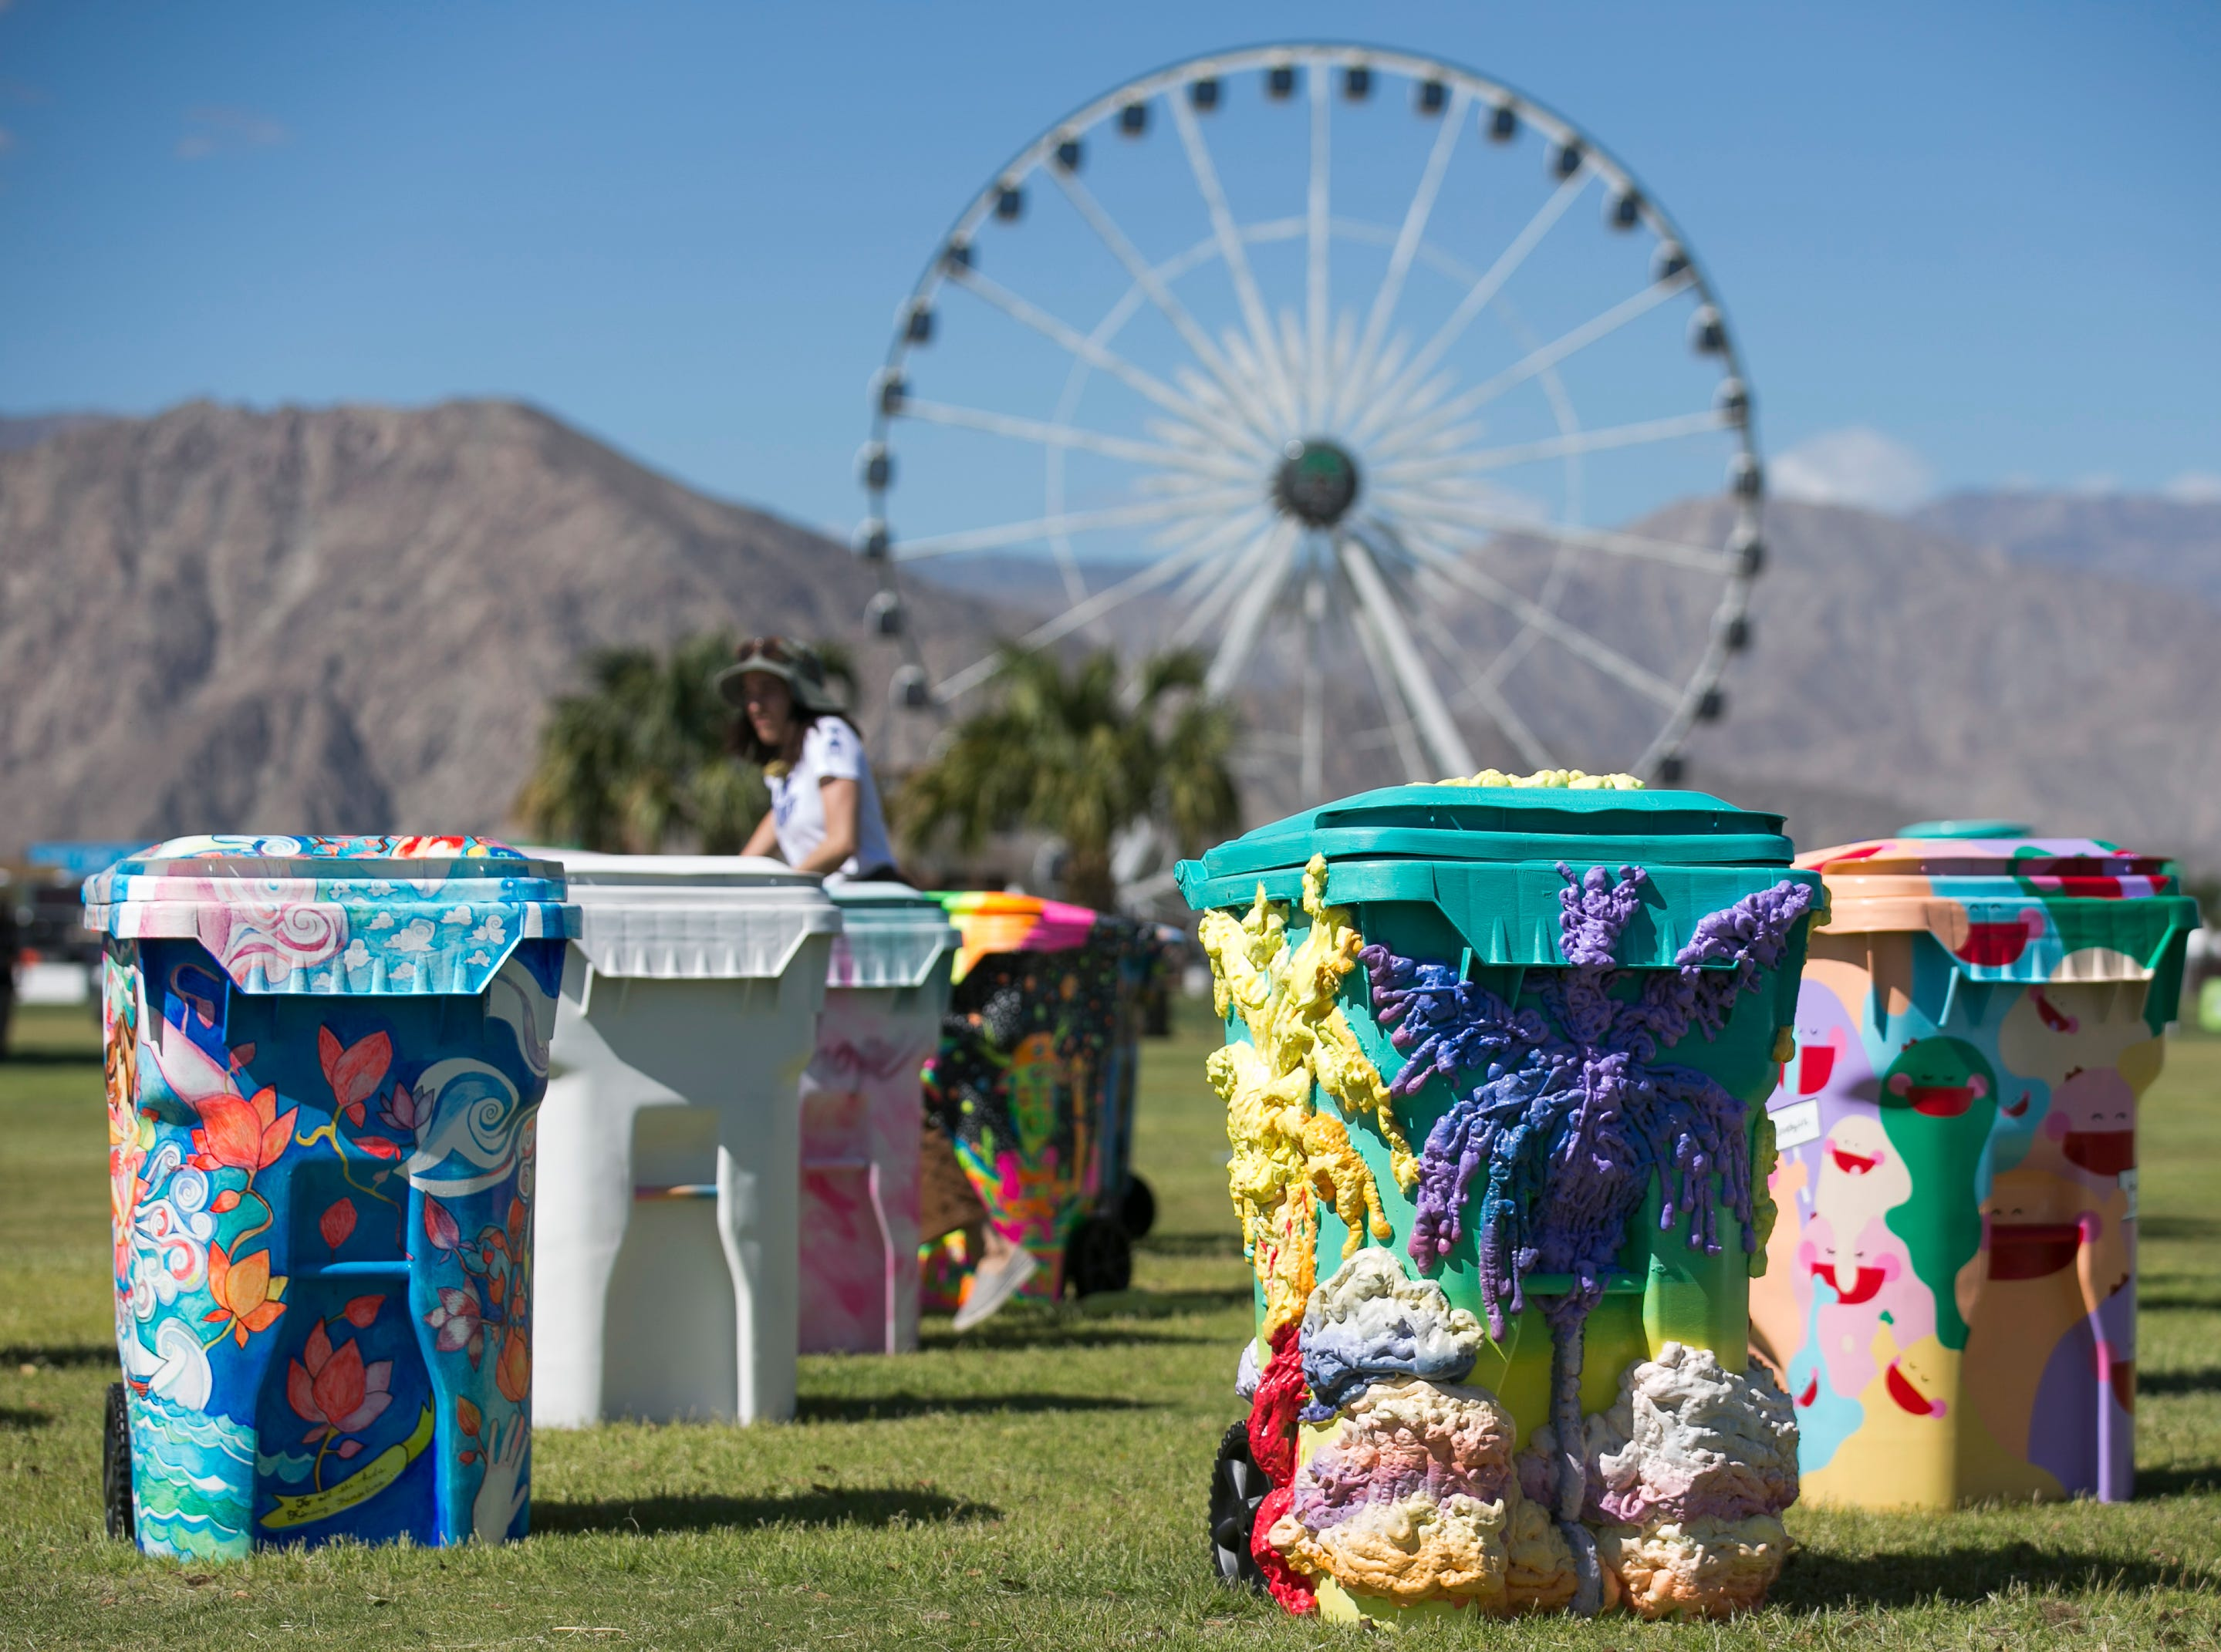 """Art installation """"TRASHed Coachella"""" by Eric Ritz with Global Inheritance sits near the lobby at the Coachella Valley Music and Arts Festival in Indio, California, on April 12, 2019. The bins were set to be donated to schools along the border after the festival."""